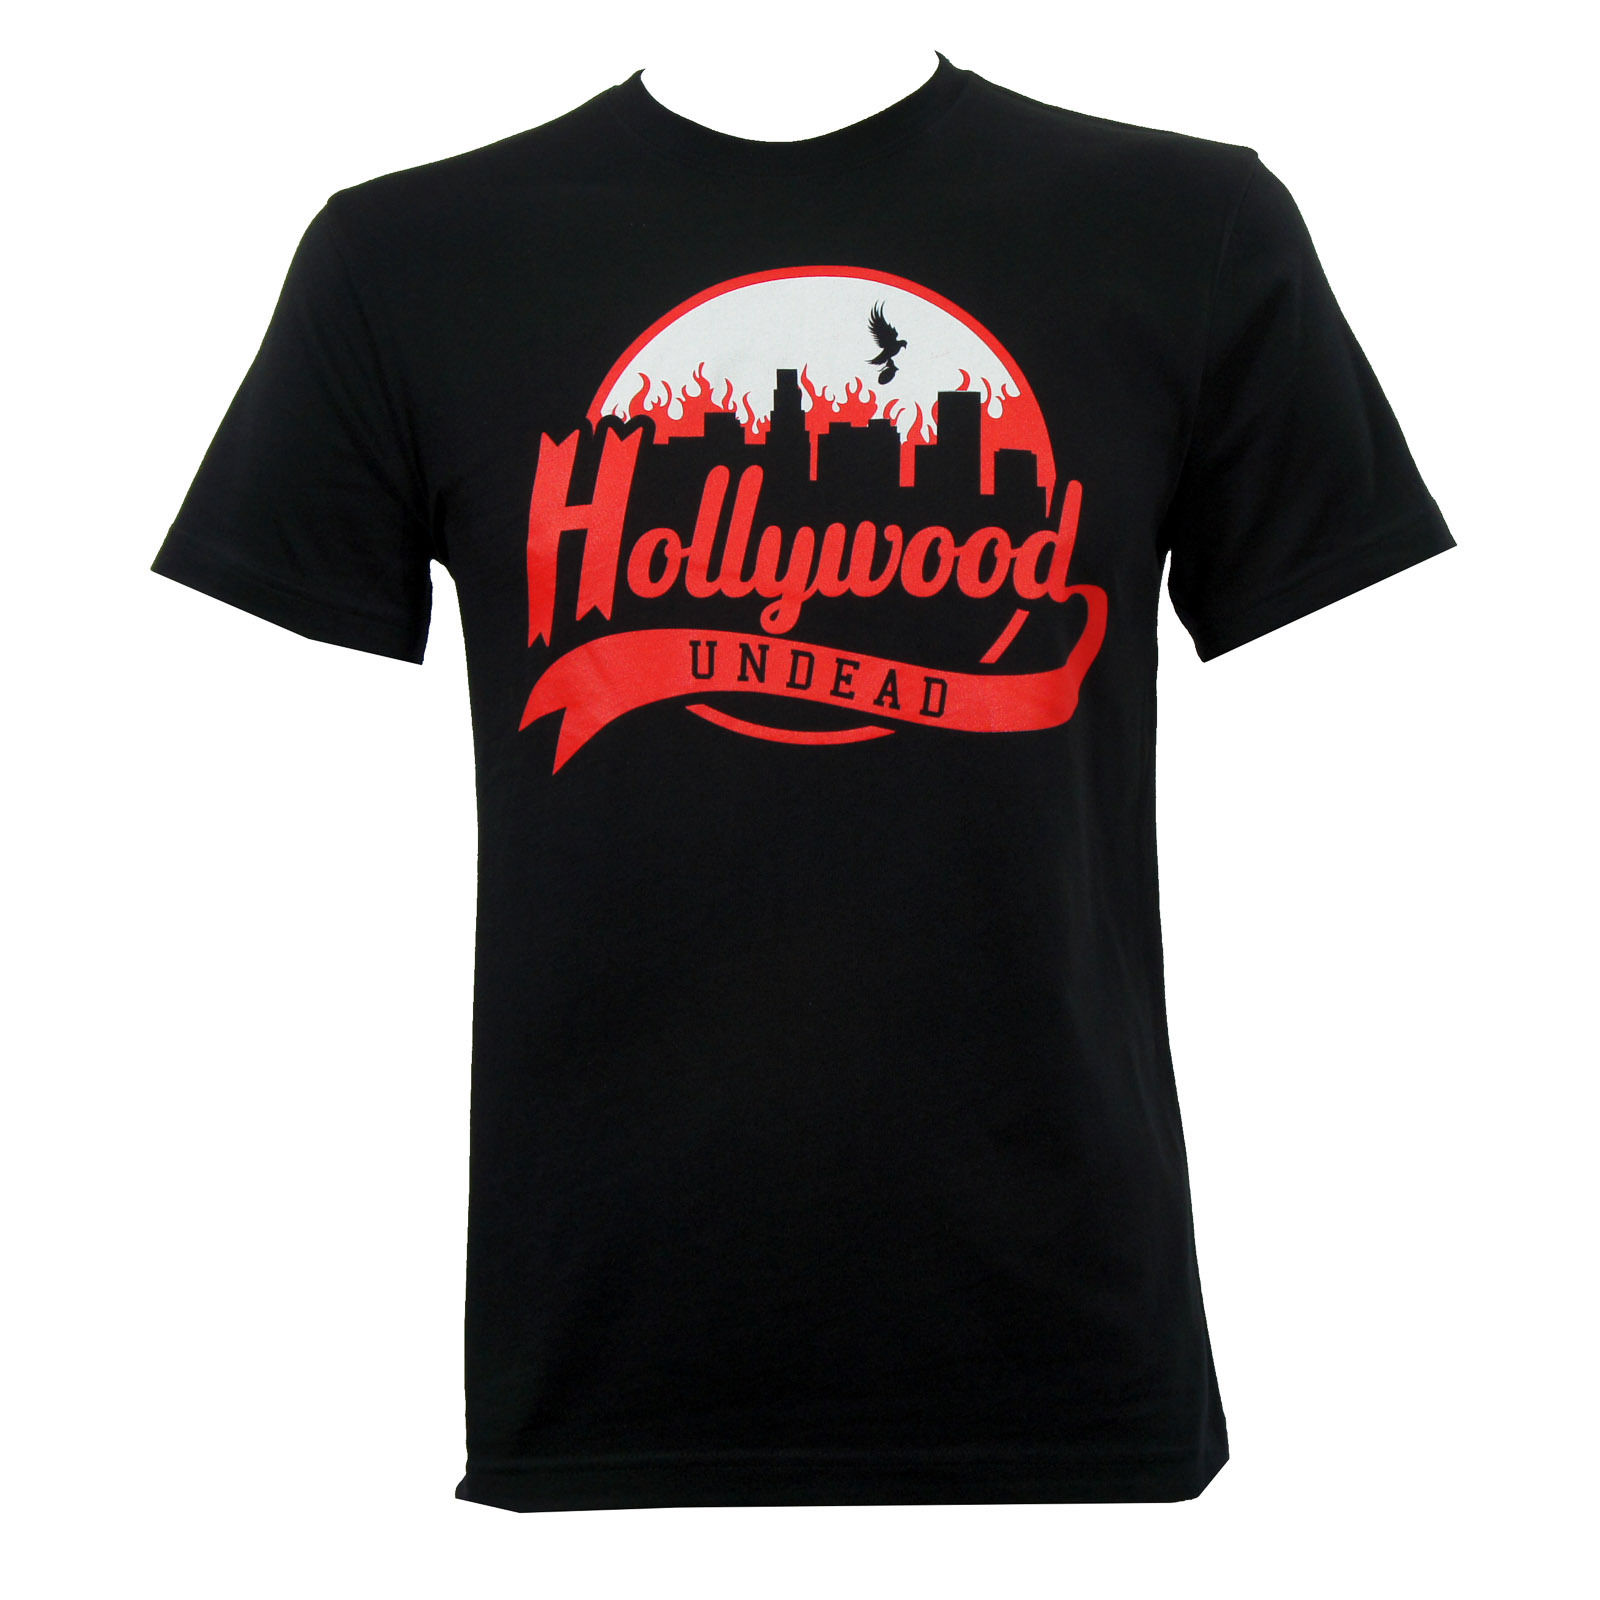 LEQEMAO Tee Shirts Hipster O-neck Authentic Hollywood Undead Band Burning City Logo Slim-fit T-shirt S-2xl New